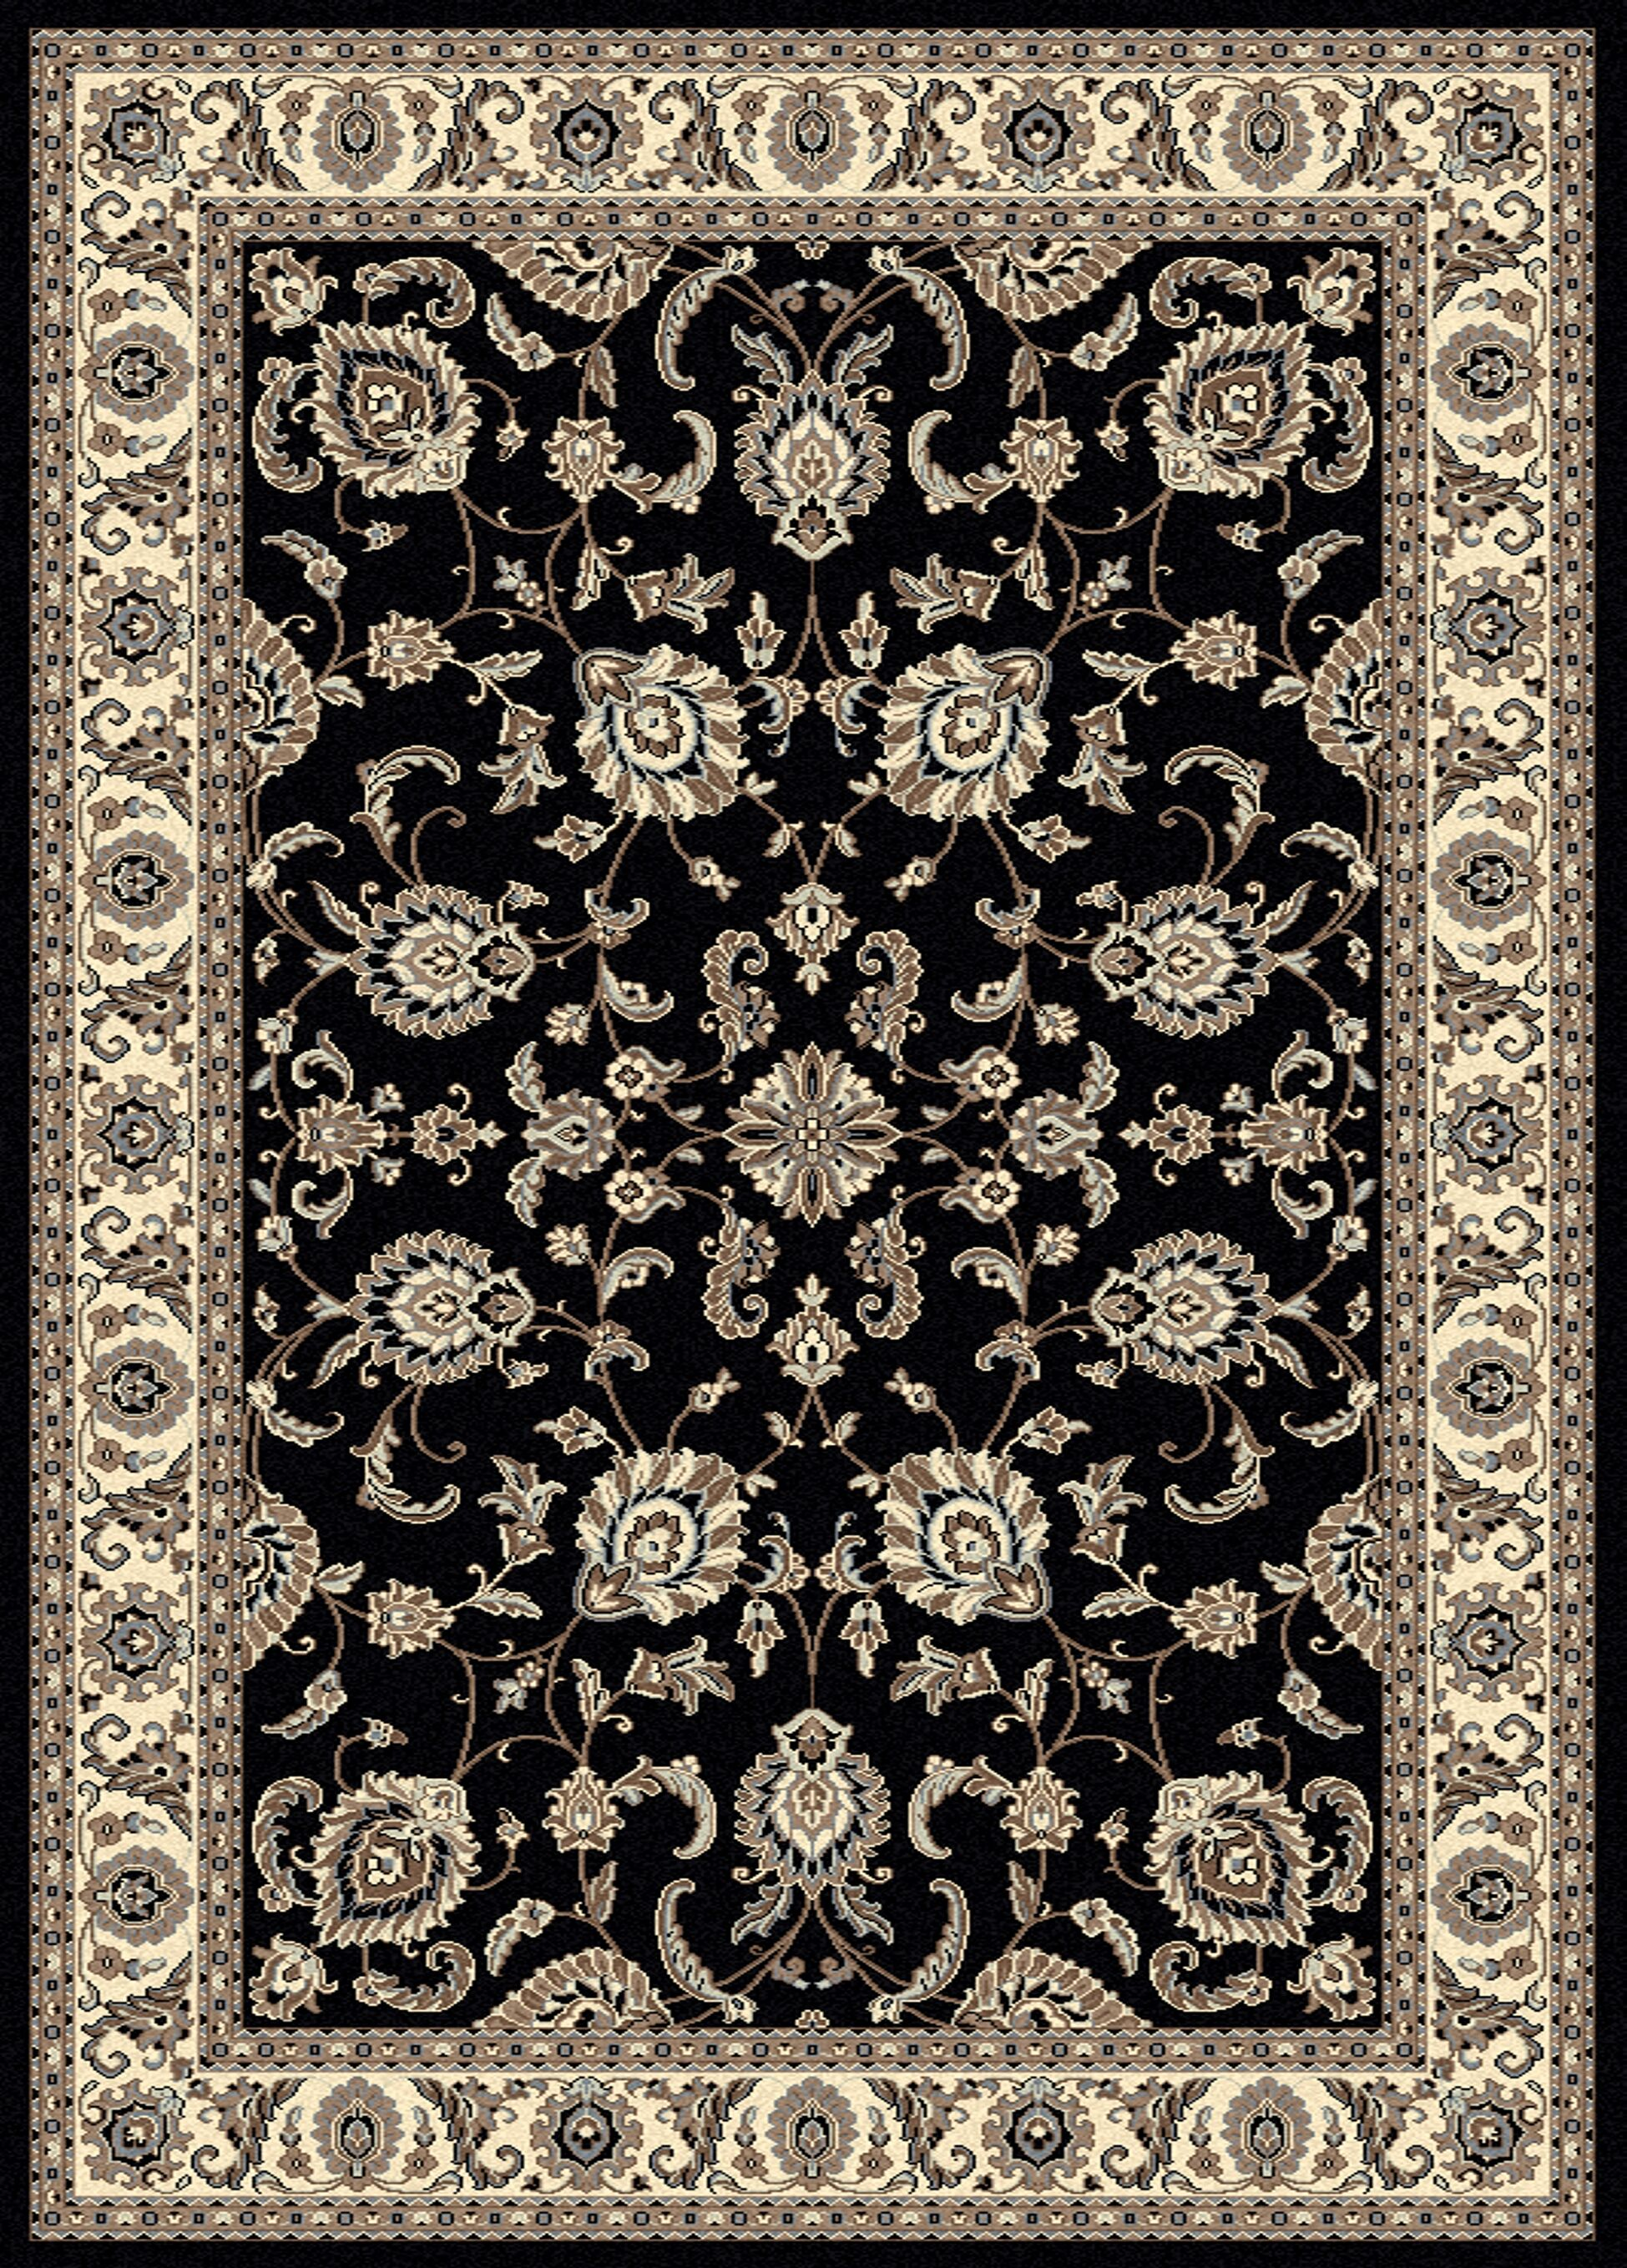 Weiser Rectangle Multi-Colored Oriental Area Rug Rug Size: Rectangle 5'5